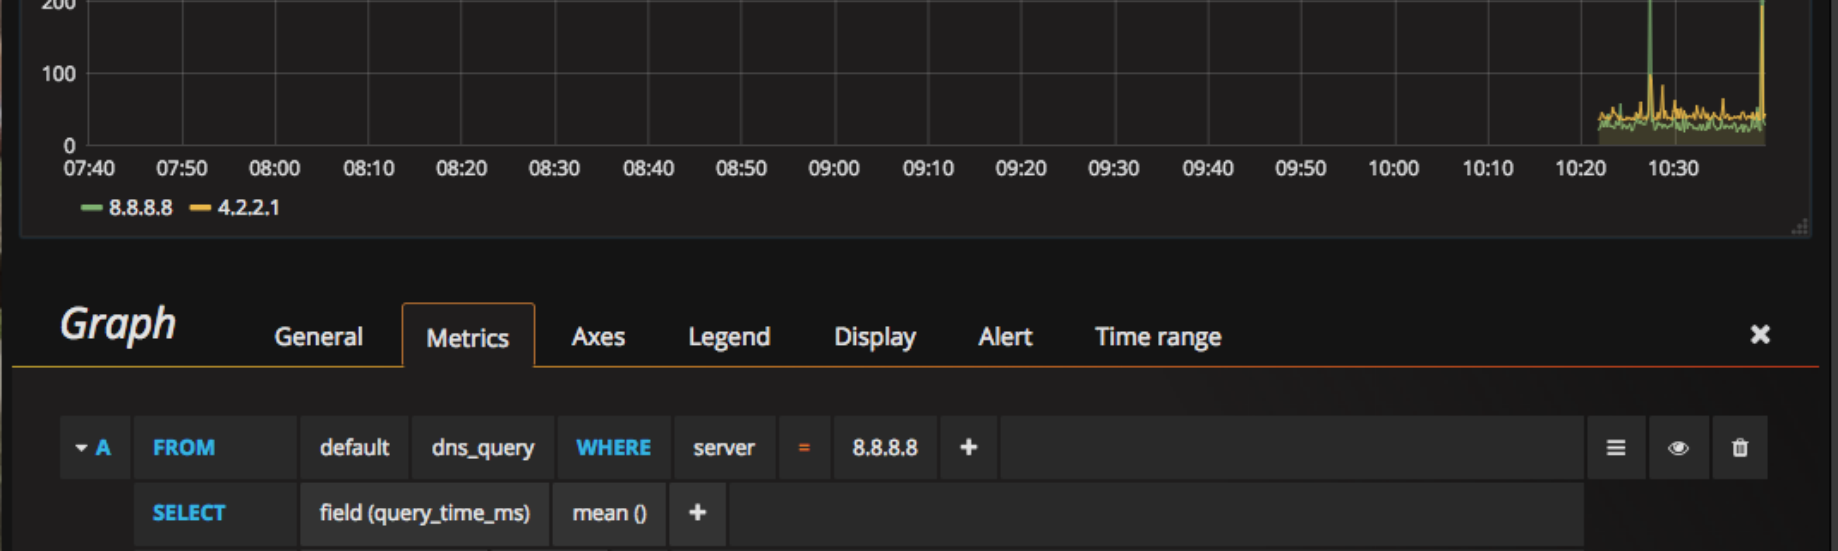 Monitoring your home network with InfluxDB on Raspberry Pi